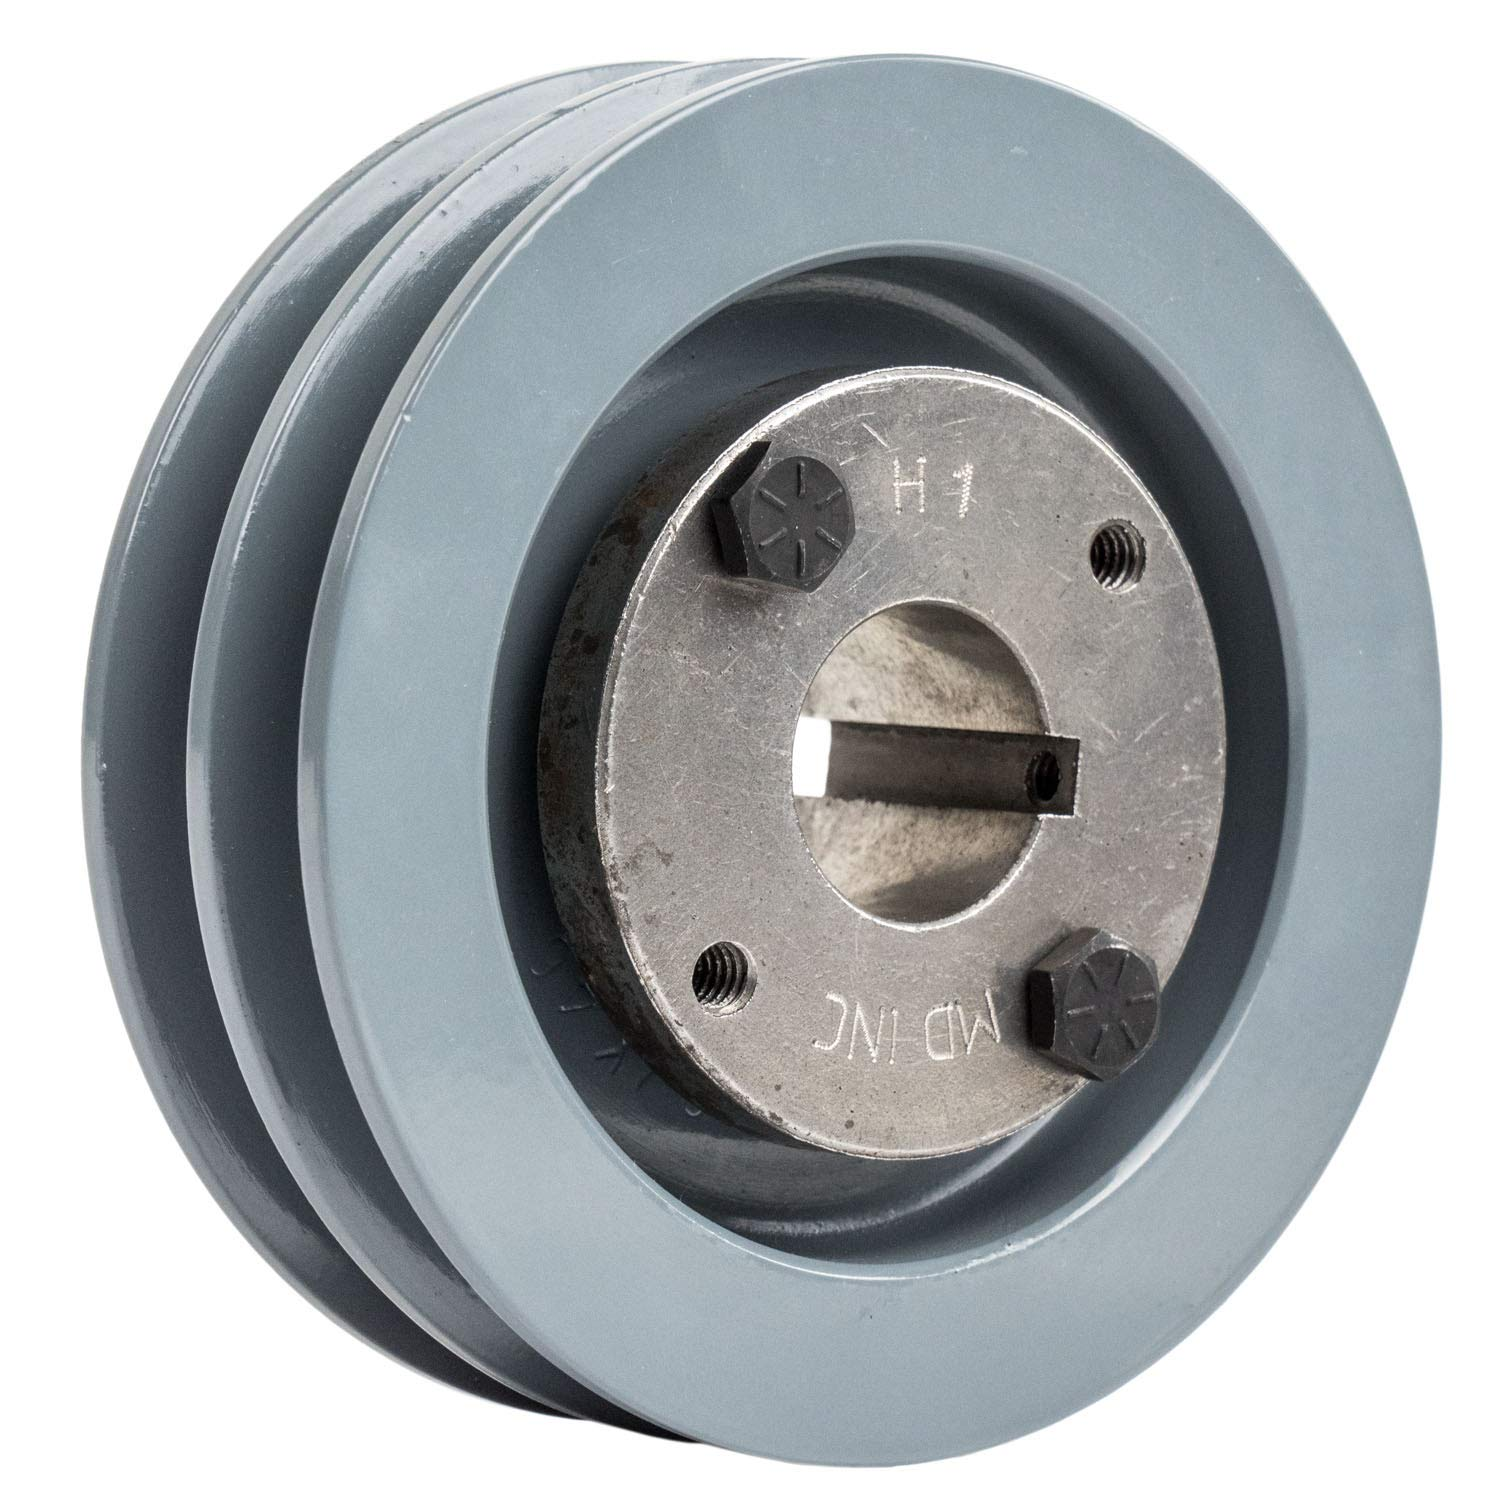 2 Piece Cast Iron 4.5'' 2 Groove Dual Belt A Section 4L Pulley with 1'' Sheave Bushing 2AK46H by Masterdrive